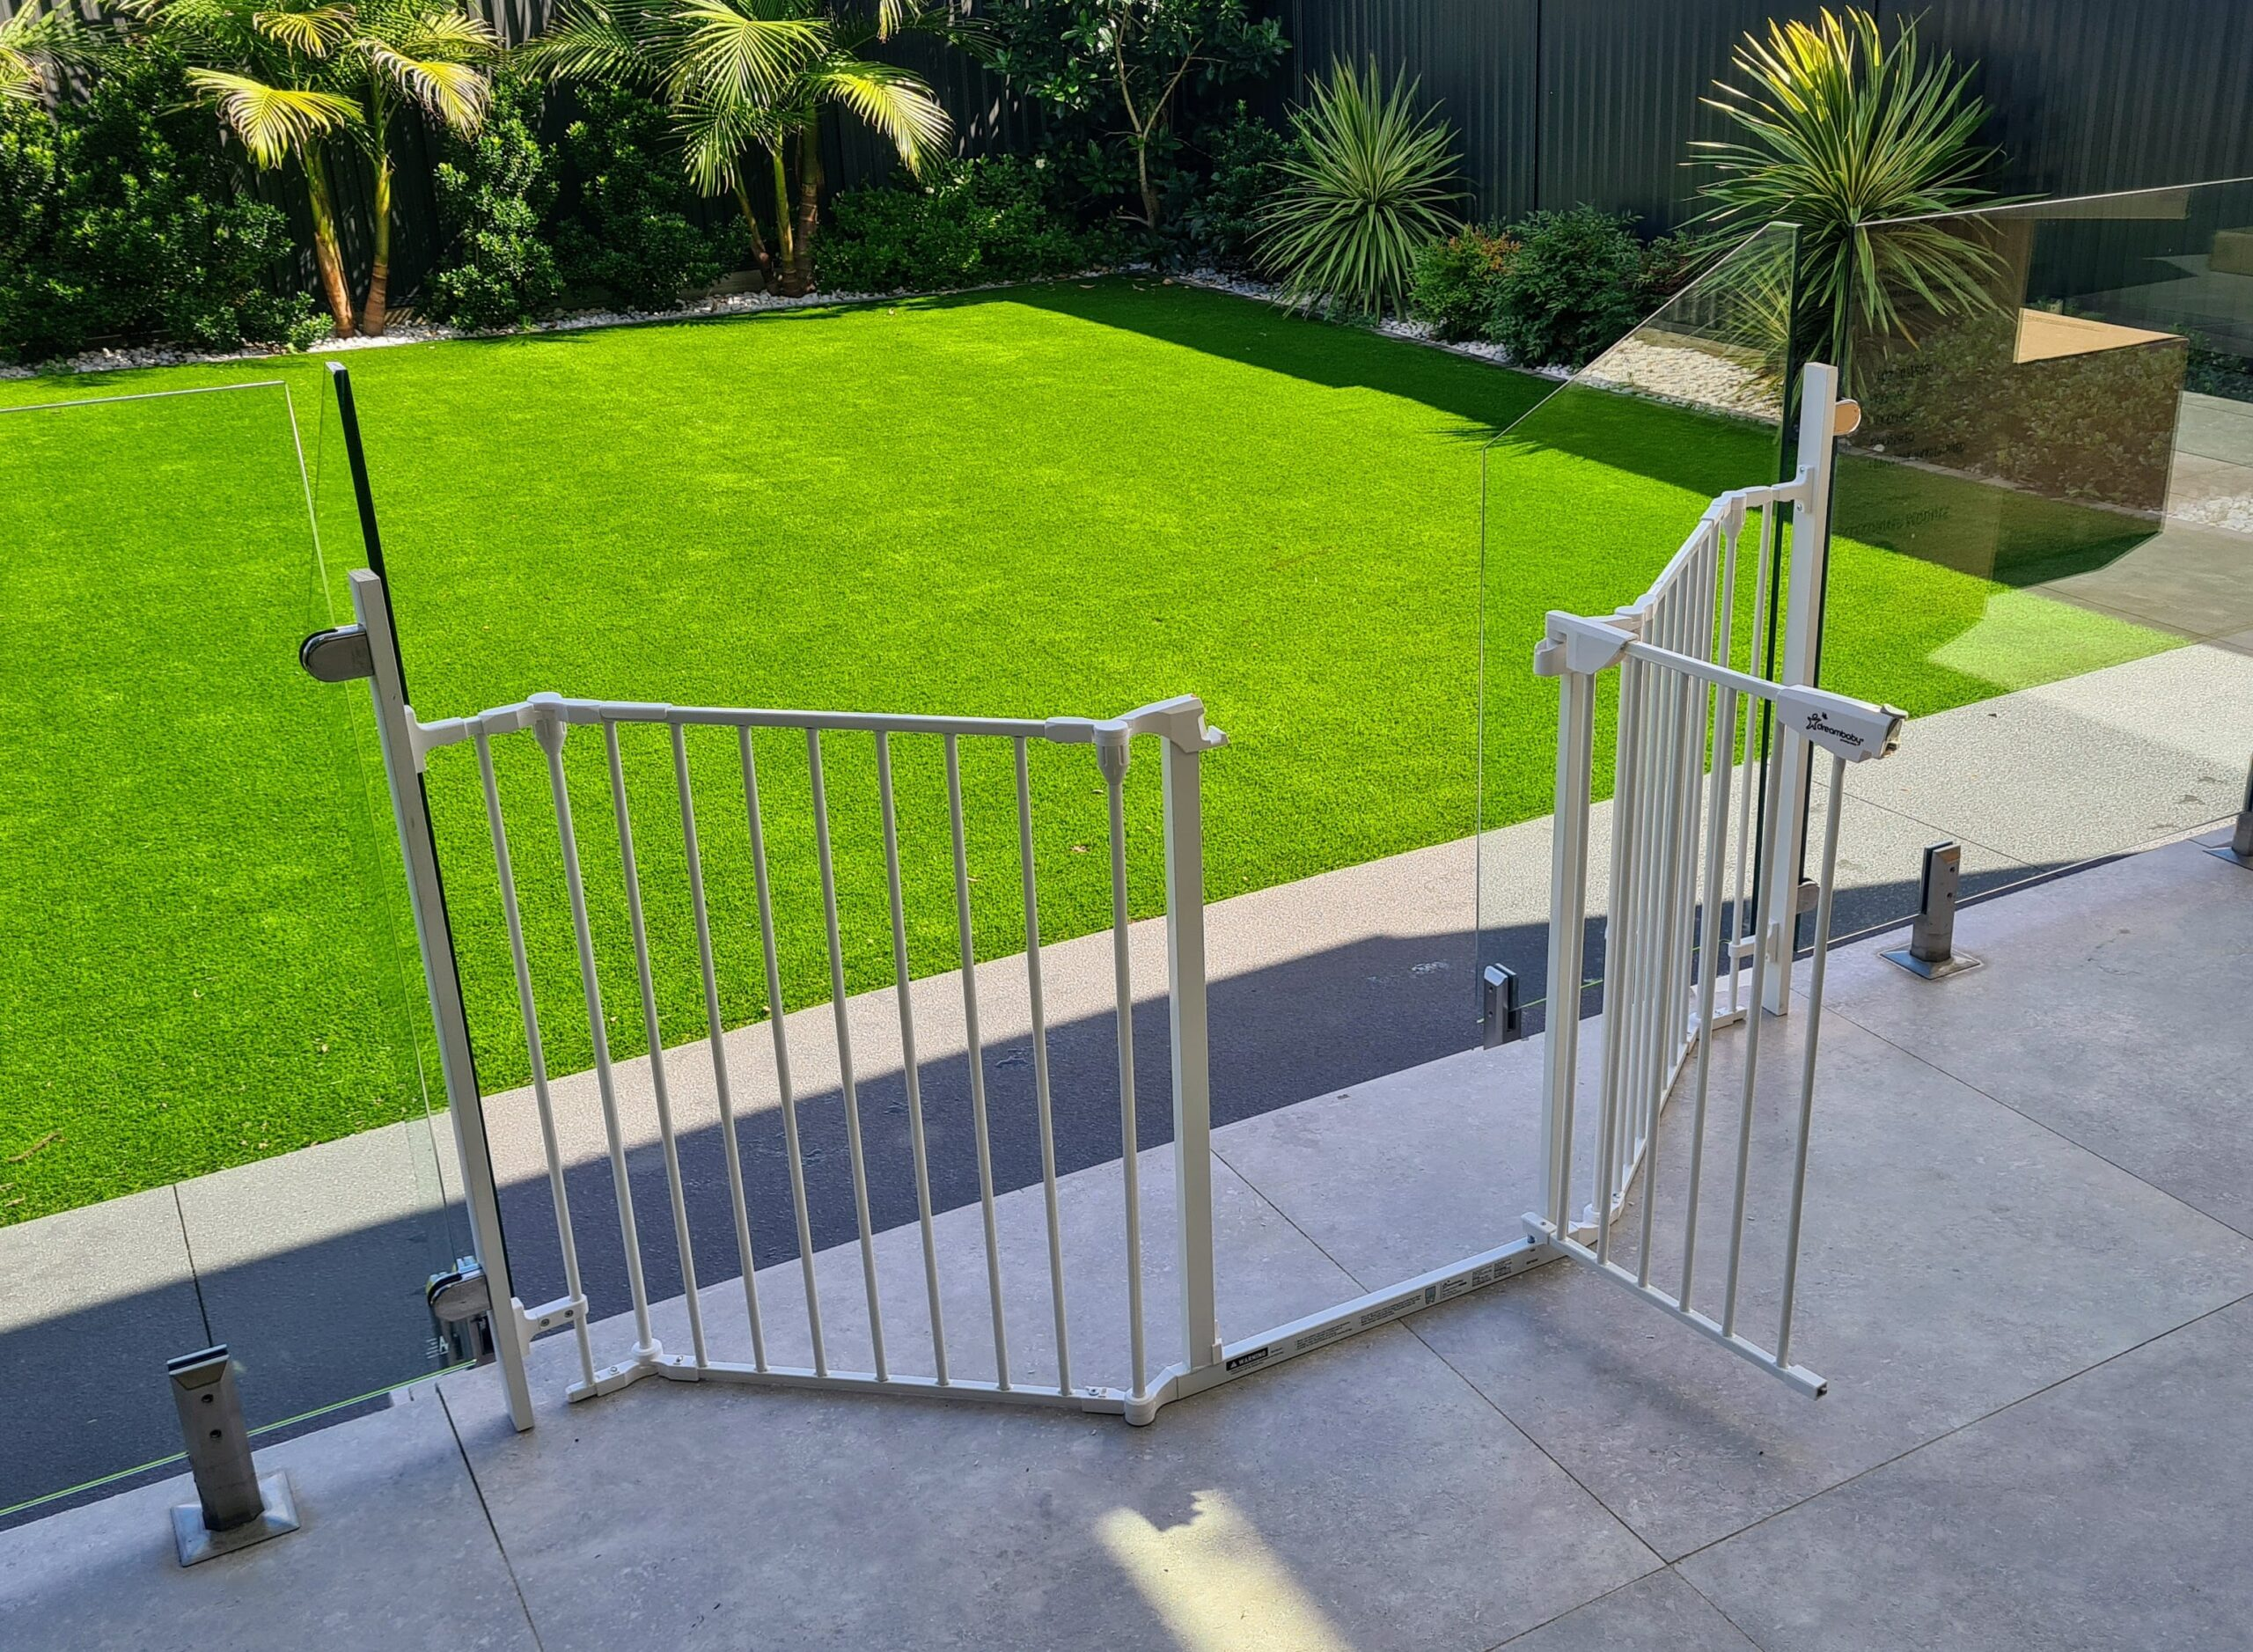 Outdoor baby proofing gate